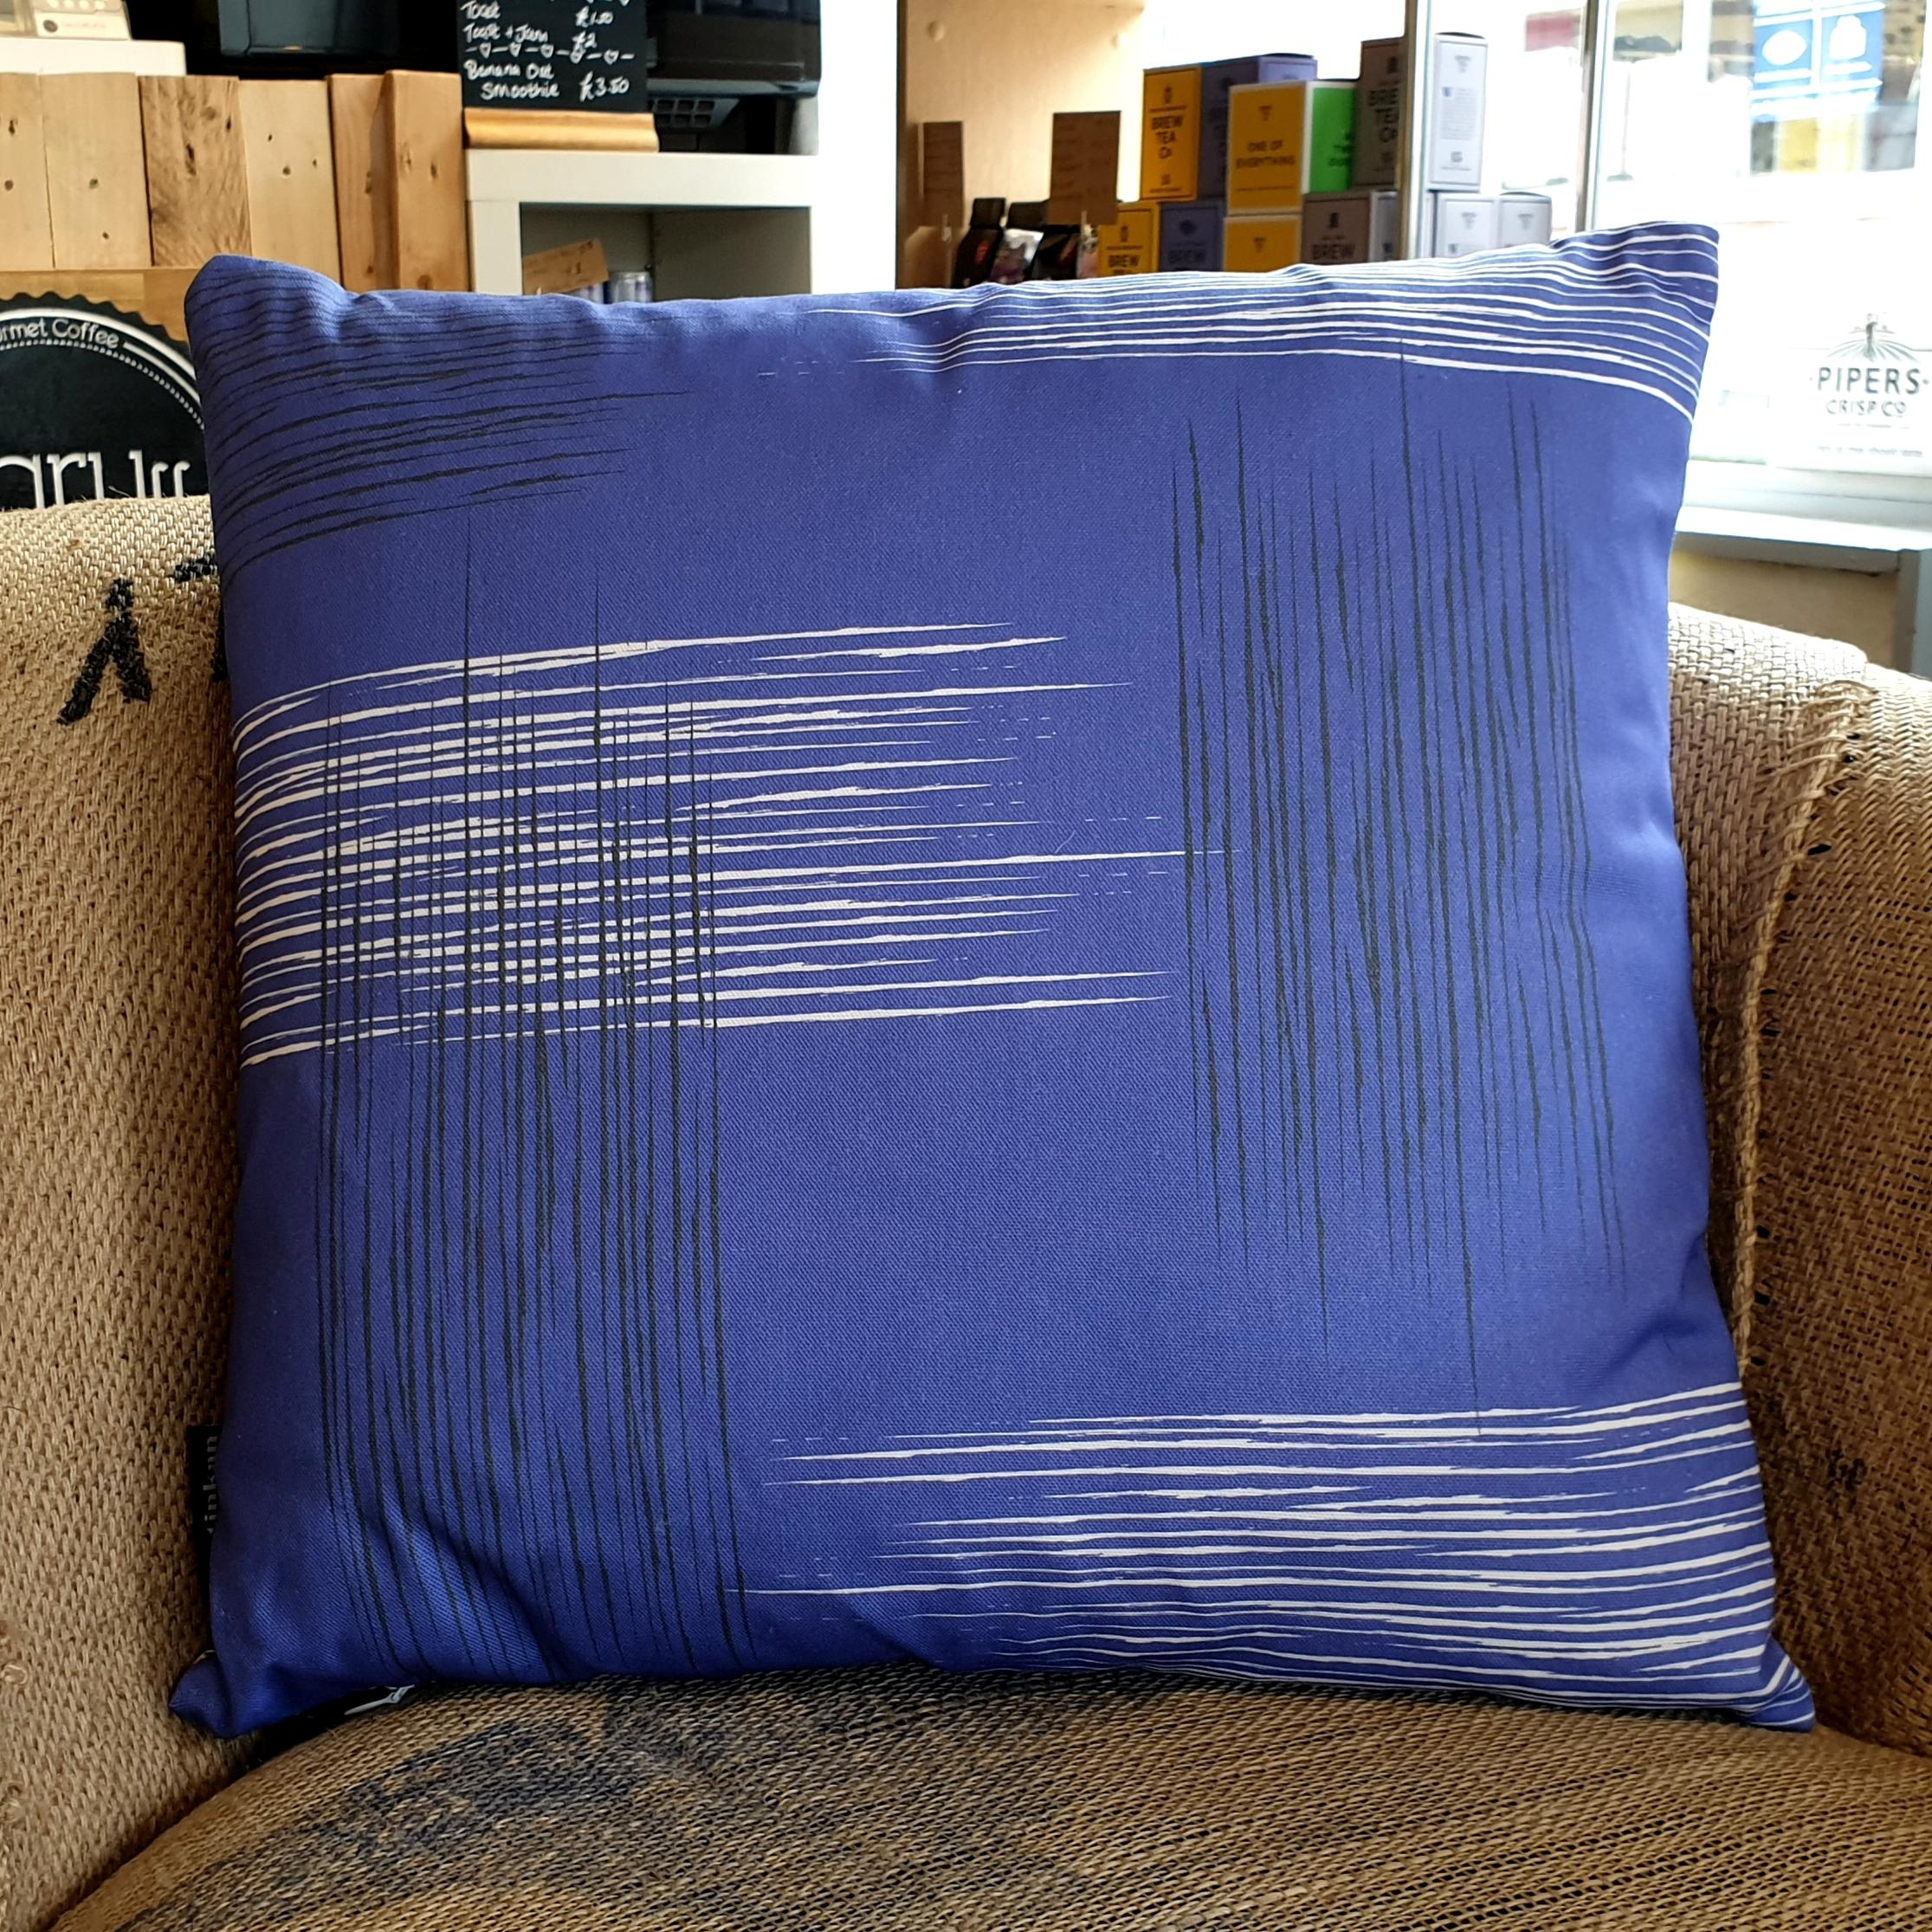 Double-sided violet purple 45cm square retro themed cushion with artistic grey and white shards designed by thetinkan. Available with an optional luxury cushion inner pad. VIEW PRODUCT >>